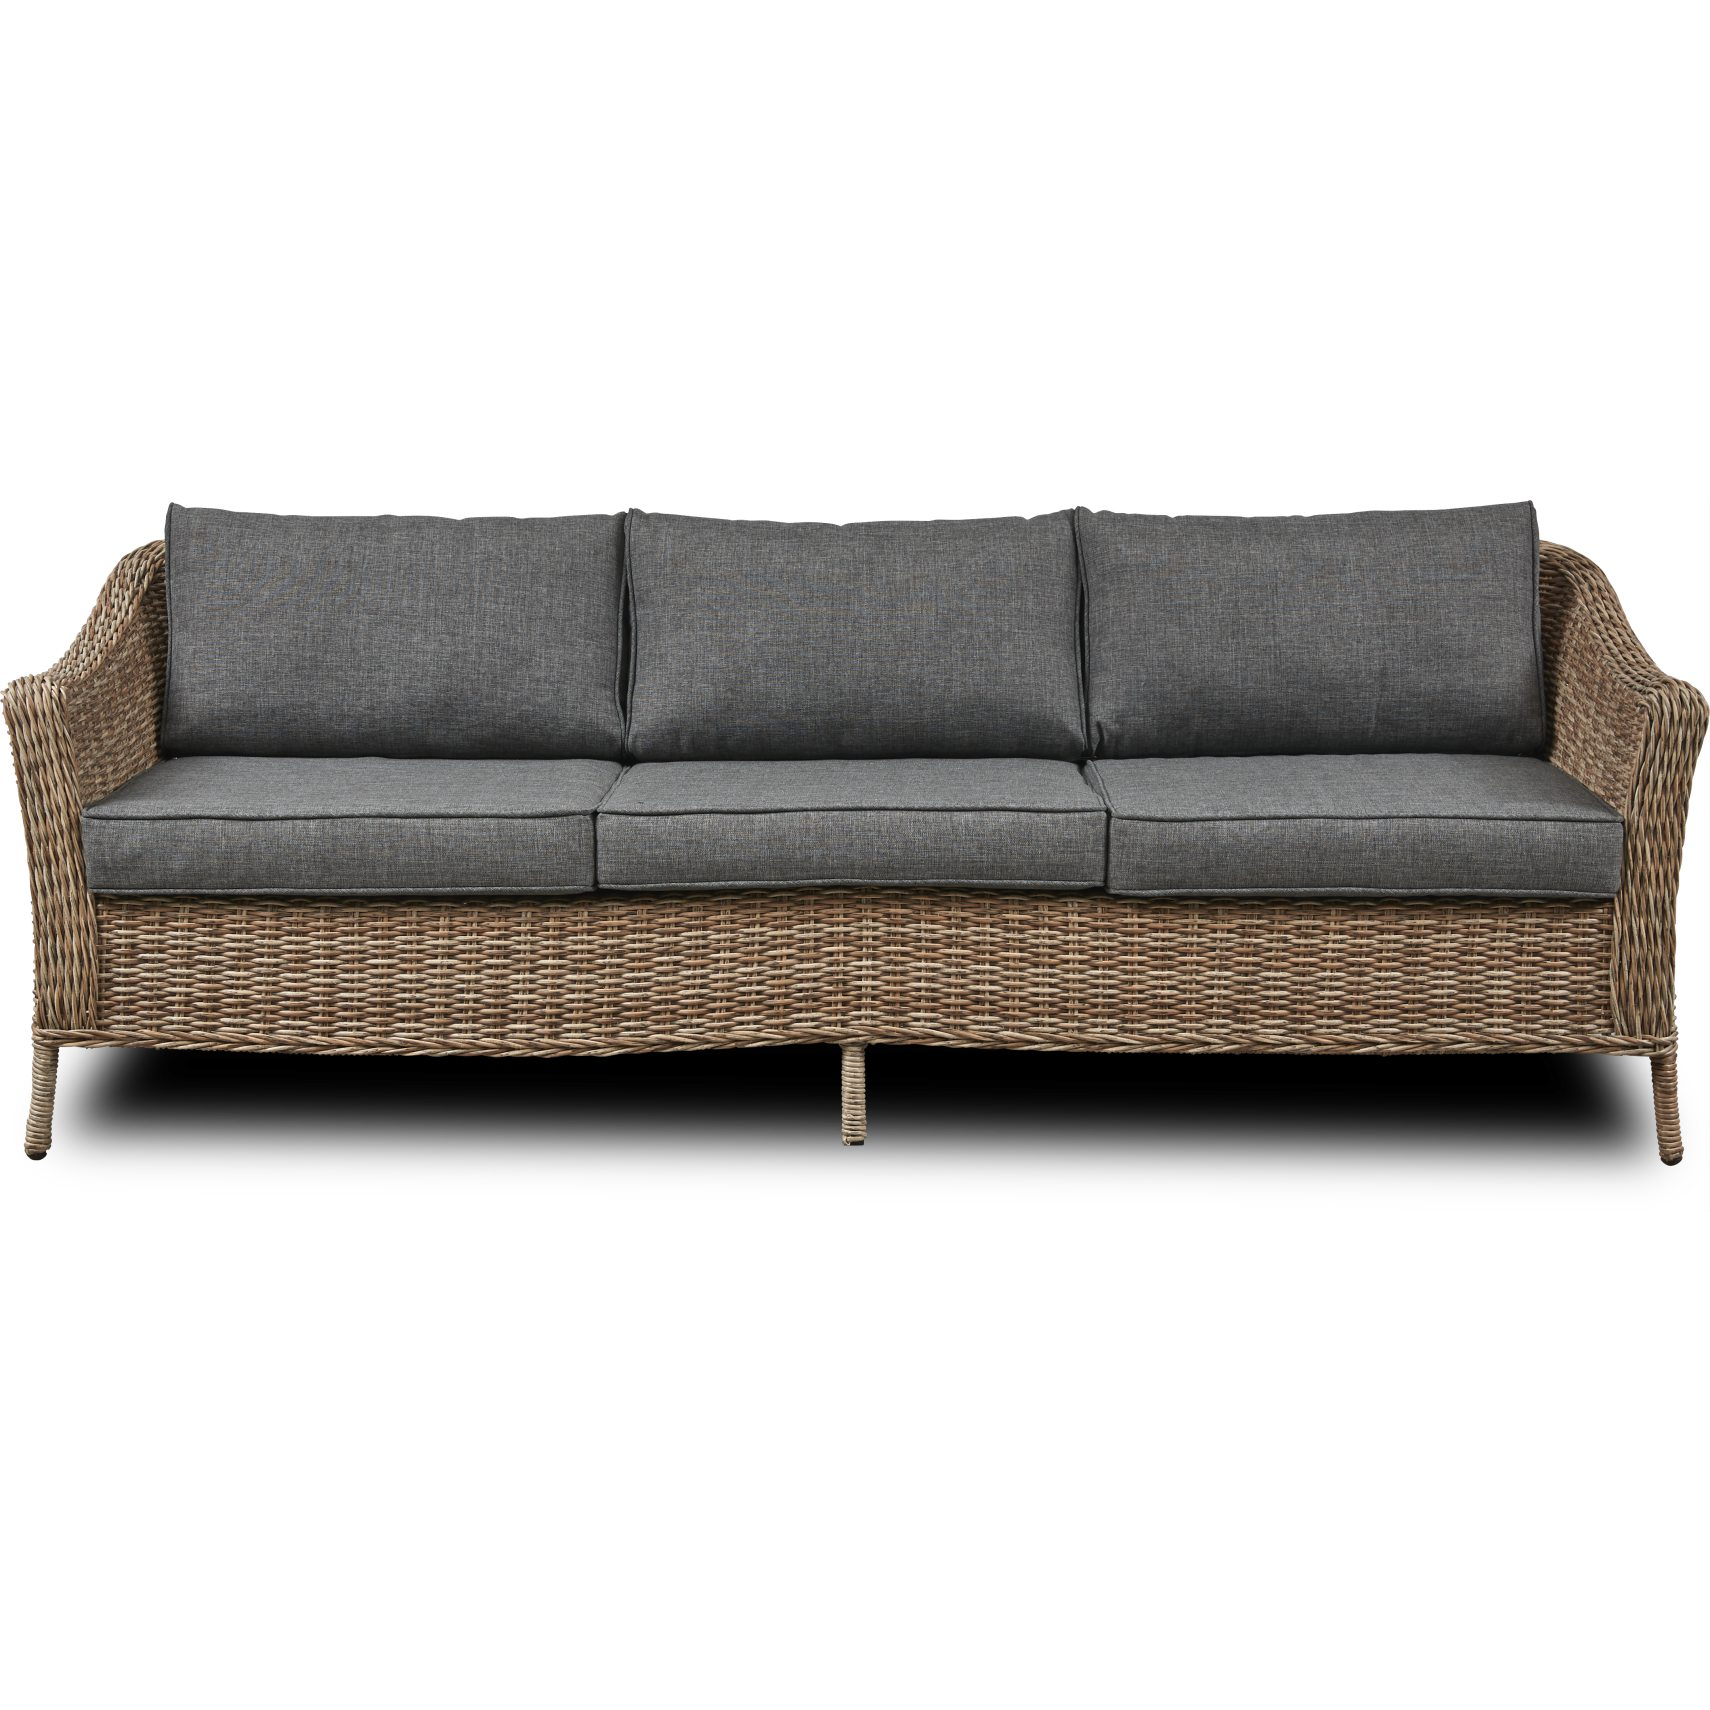 polyrattan sofa trendy polyrattan sofa with polyrattan. Black Bedroom Furniture Sets. Home Design Ideas